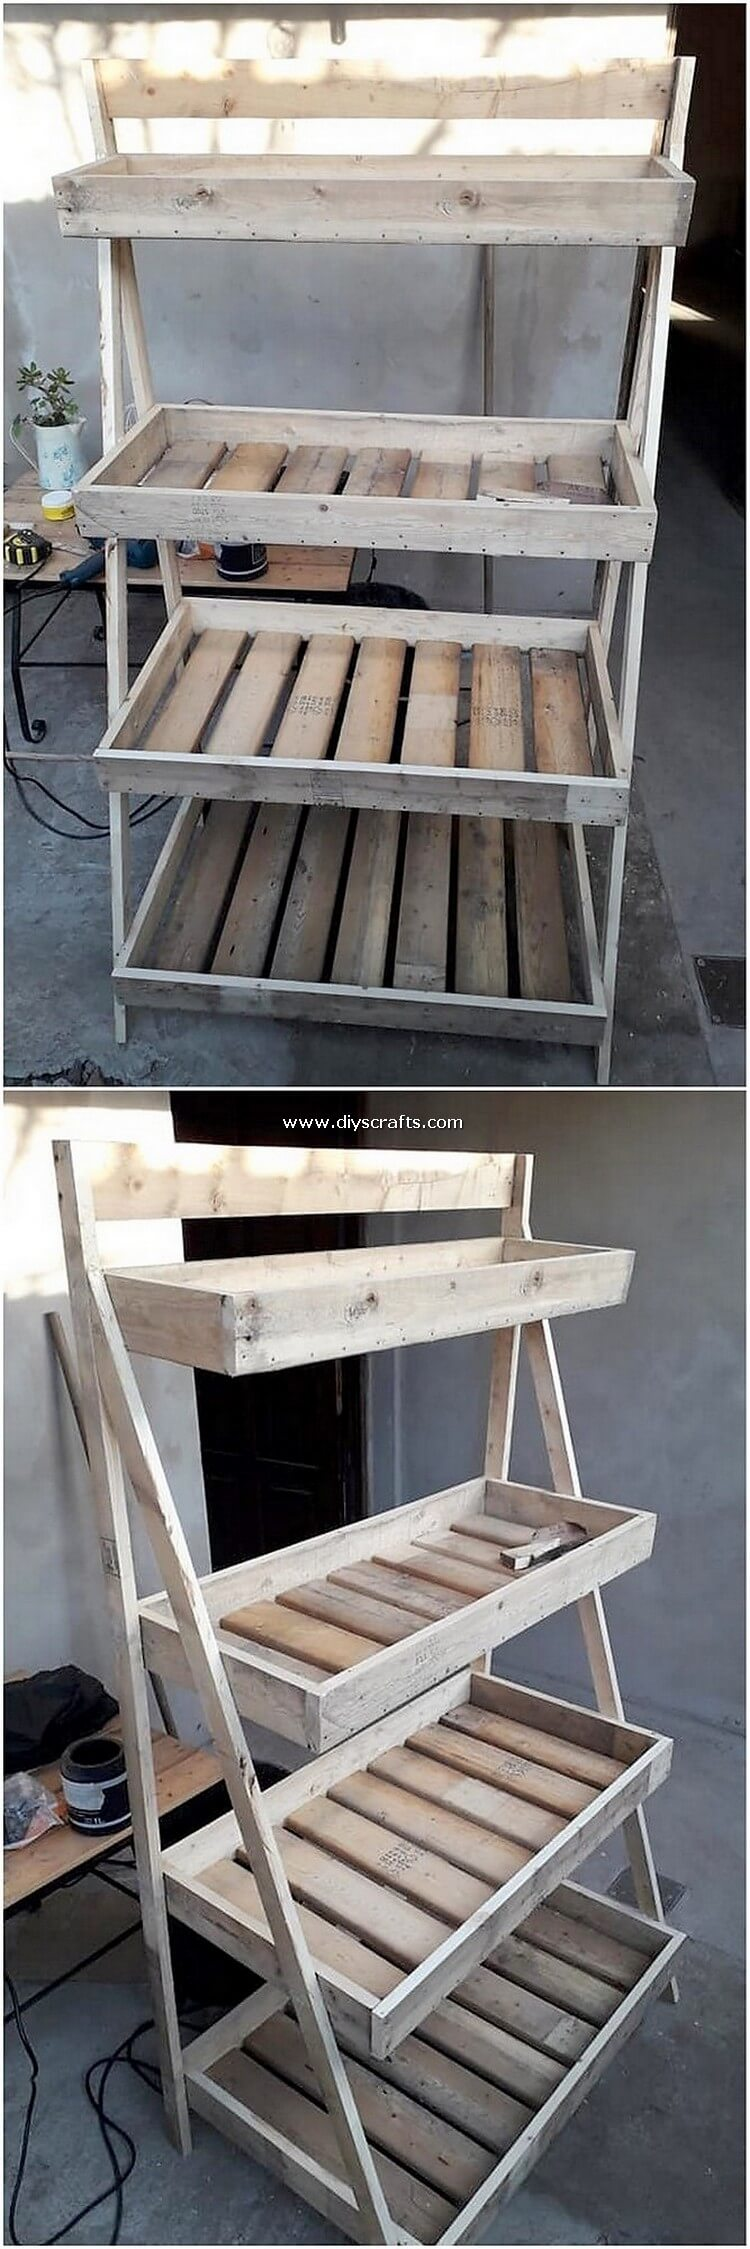 Pallet-Shelving-Stand-1